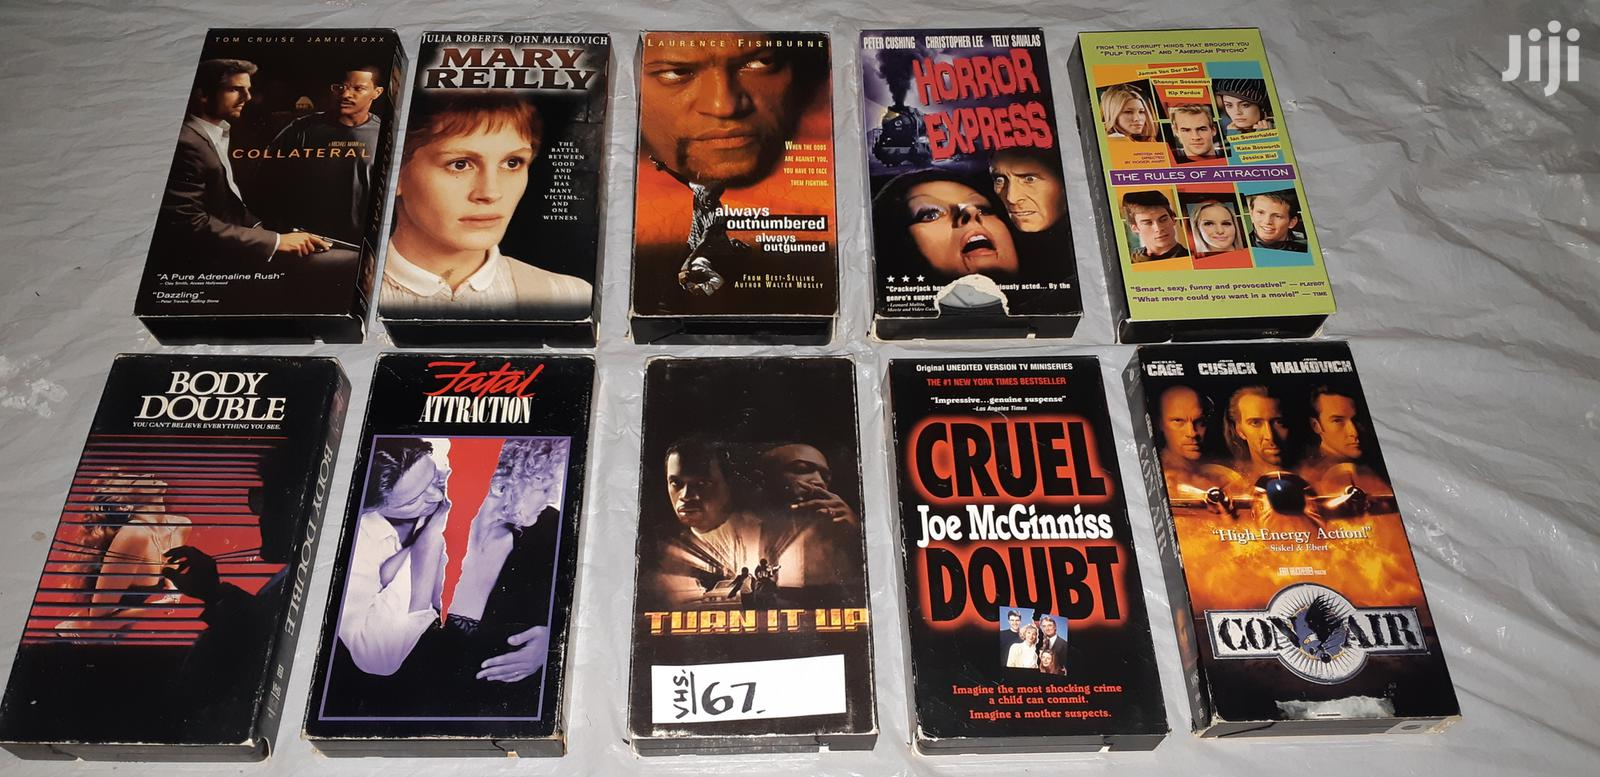 Sets of Dvds and VHS MOVIES Nos. 66, 67 and 68. | CDs & DVDs for sale in Olkaria, Nakuru, Kenya